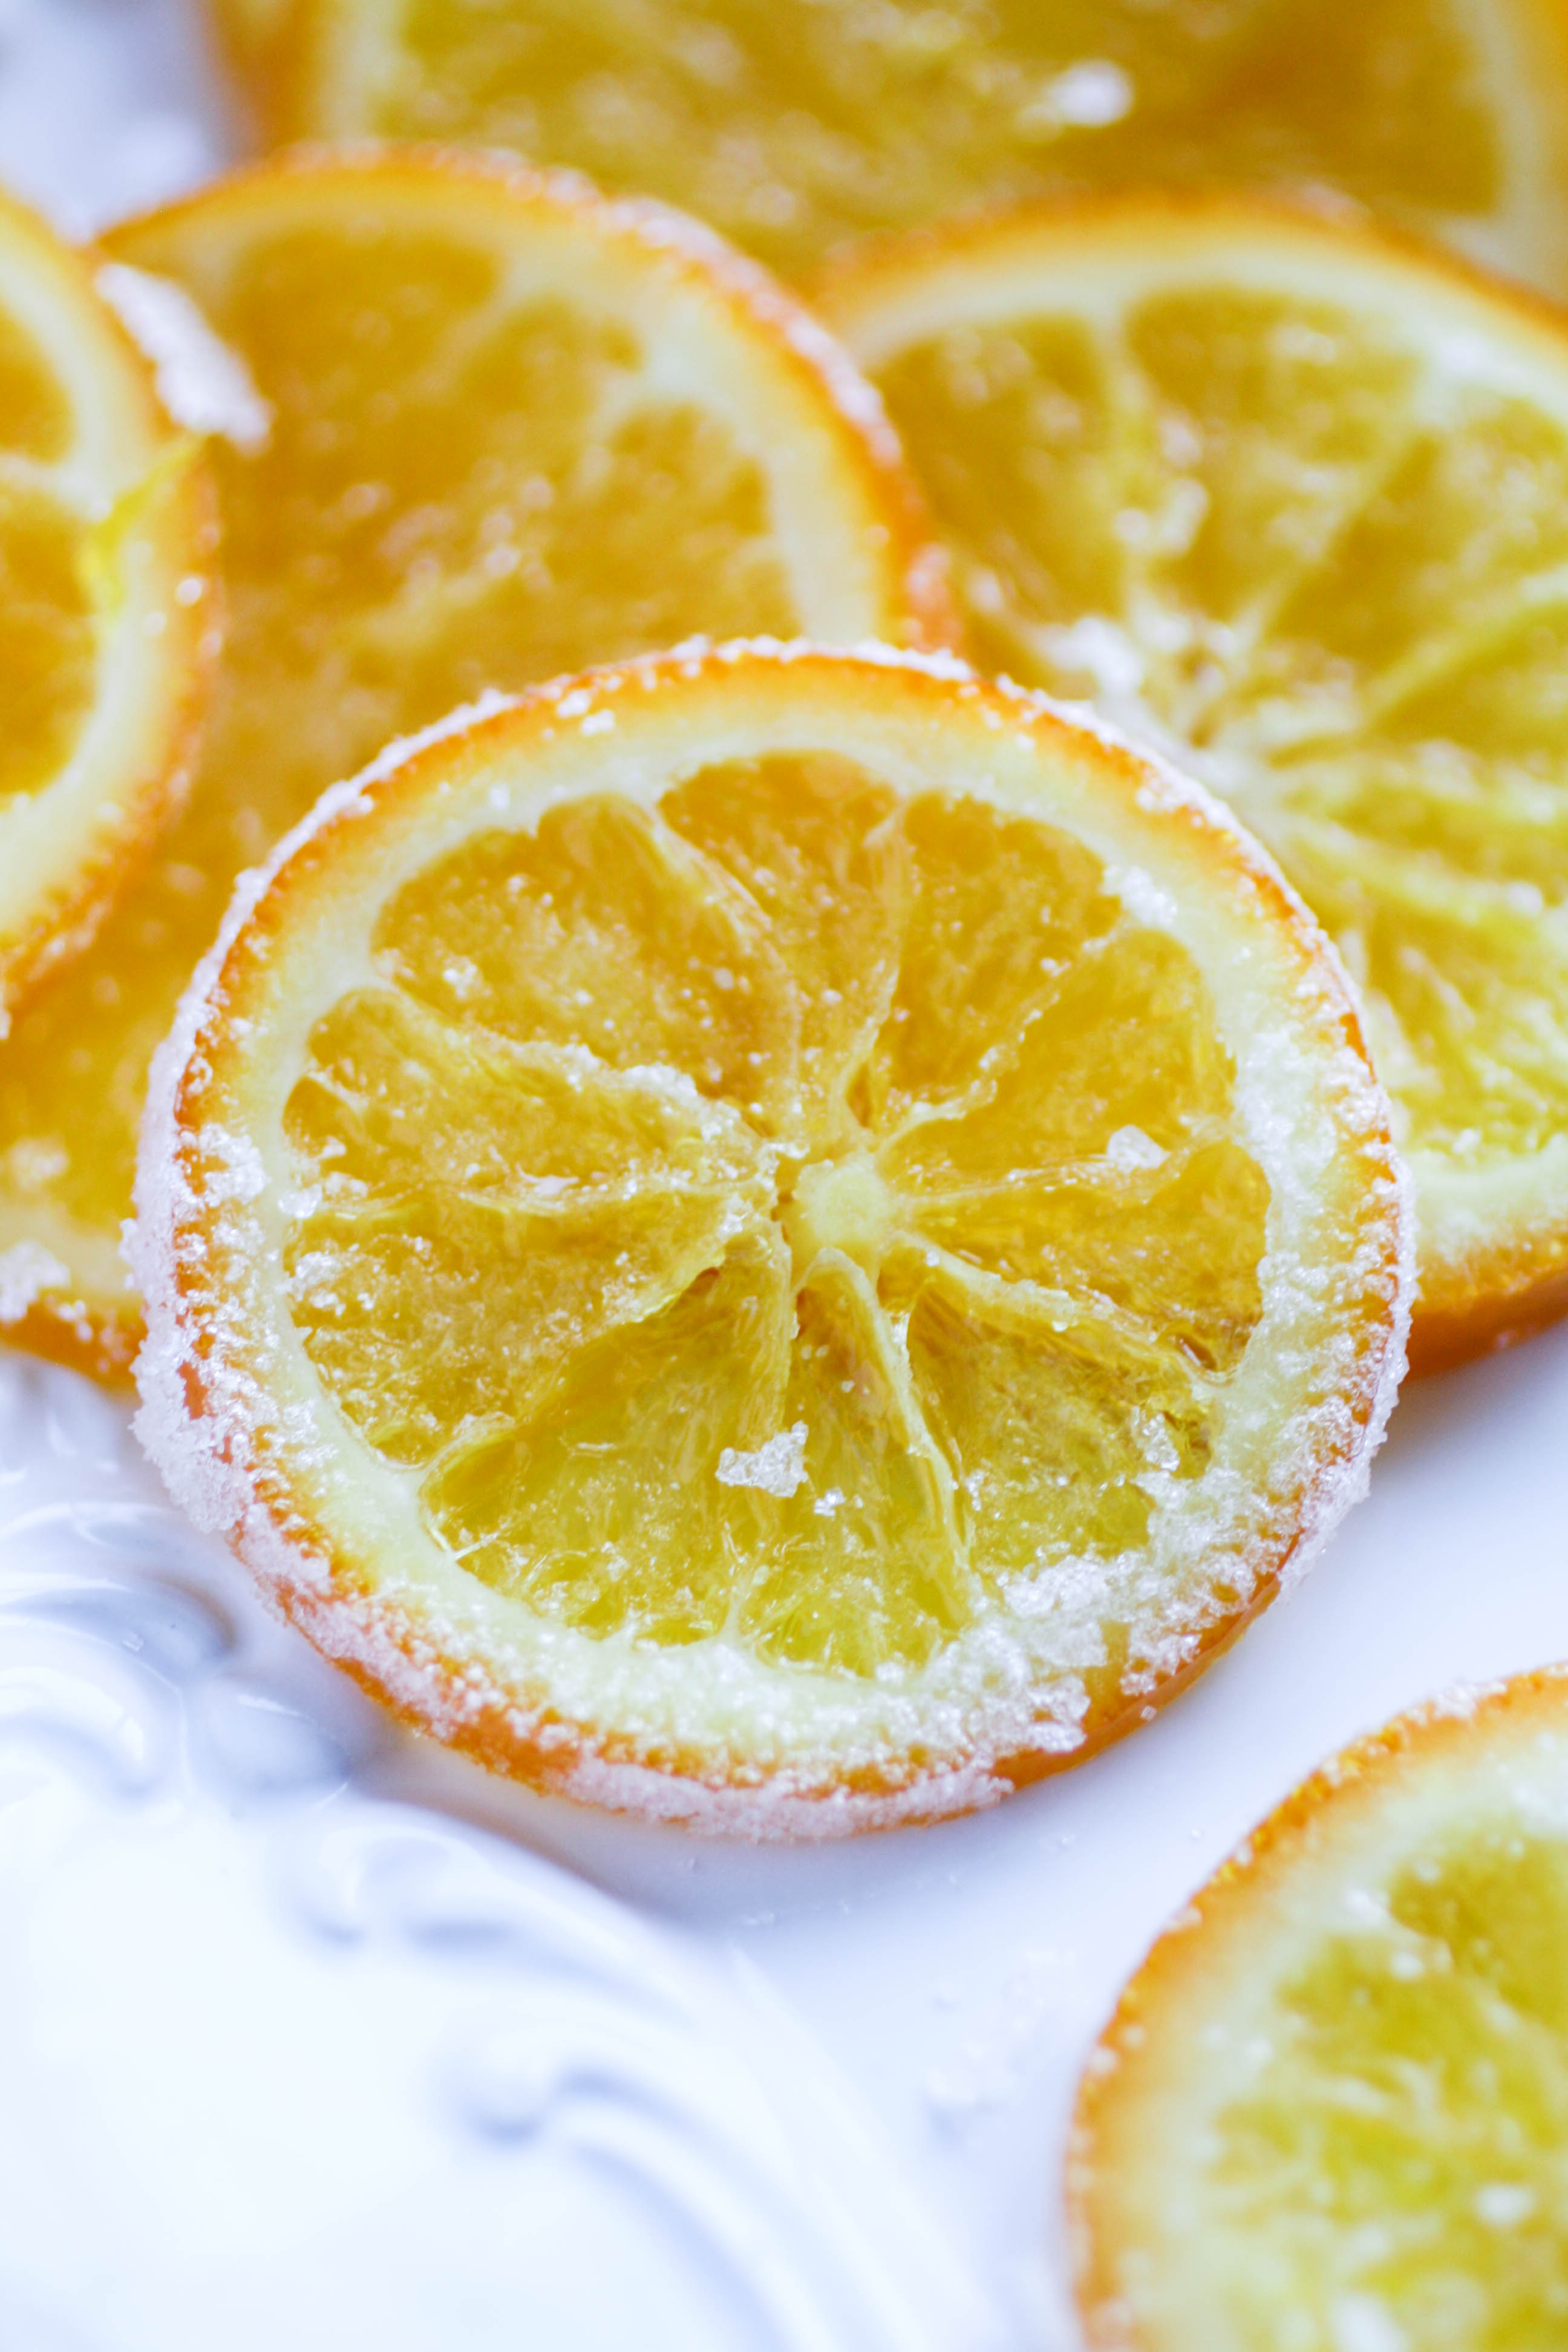 Candied Orange Slices are a treat that will brighten any day. You'll love the citrus vibe of these candied orange slices!